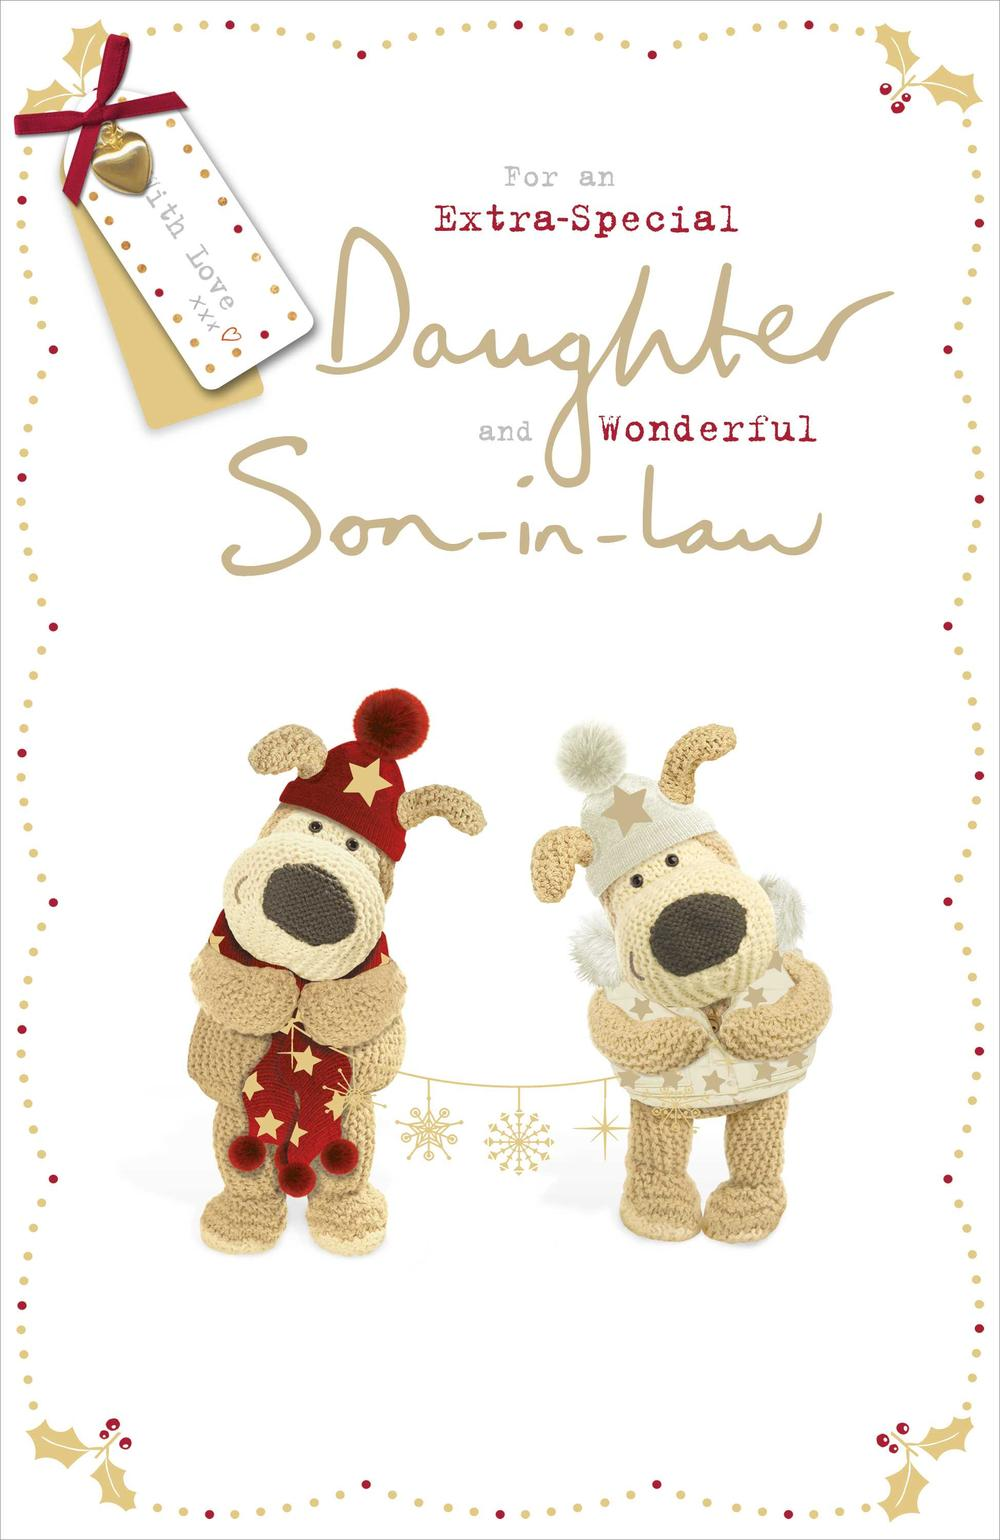 Brother /& Sister-In-Law Emma Grant Christmas Greeting Card Beautiful Xmas Cards